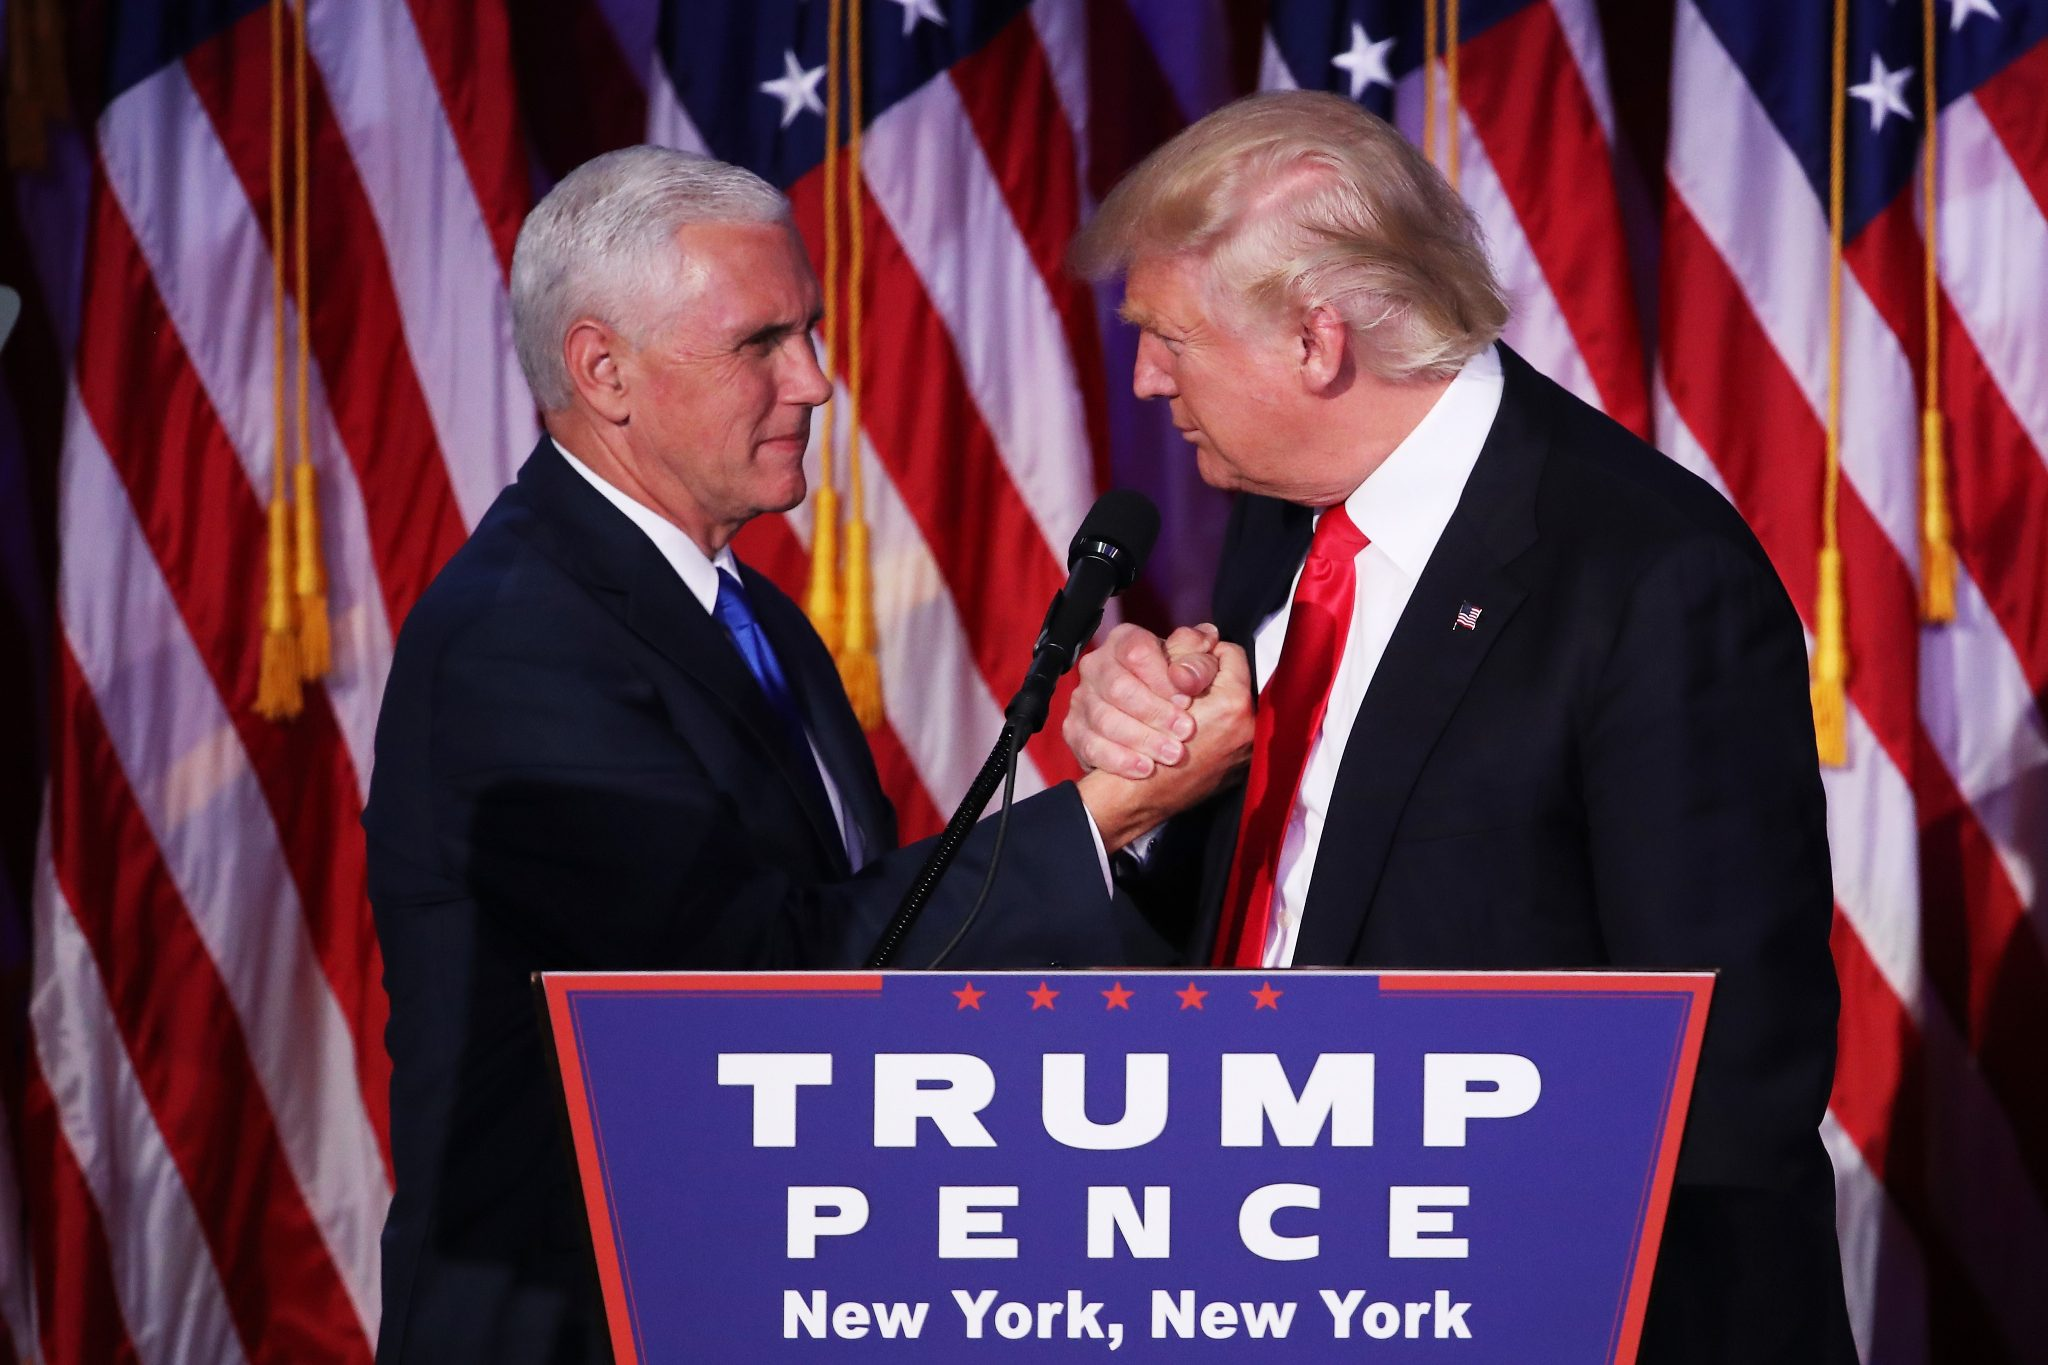 Mike Pence & Donald Trump